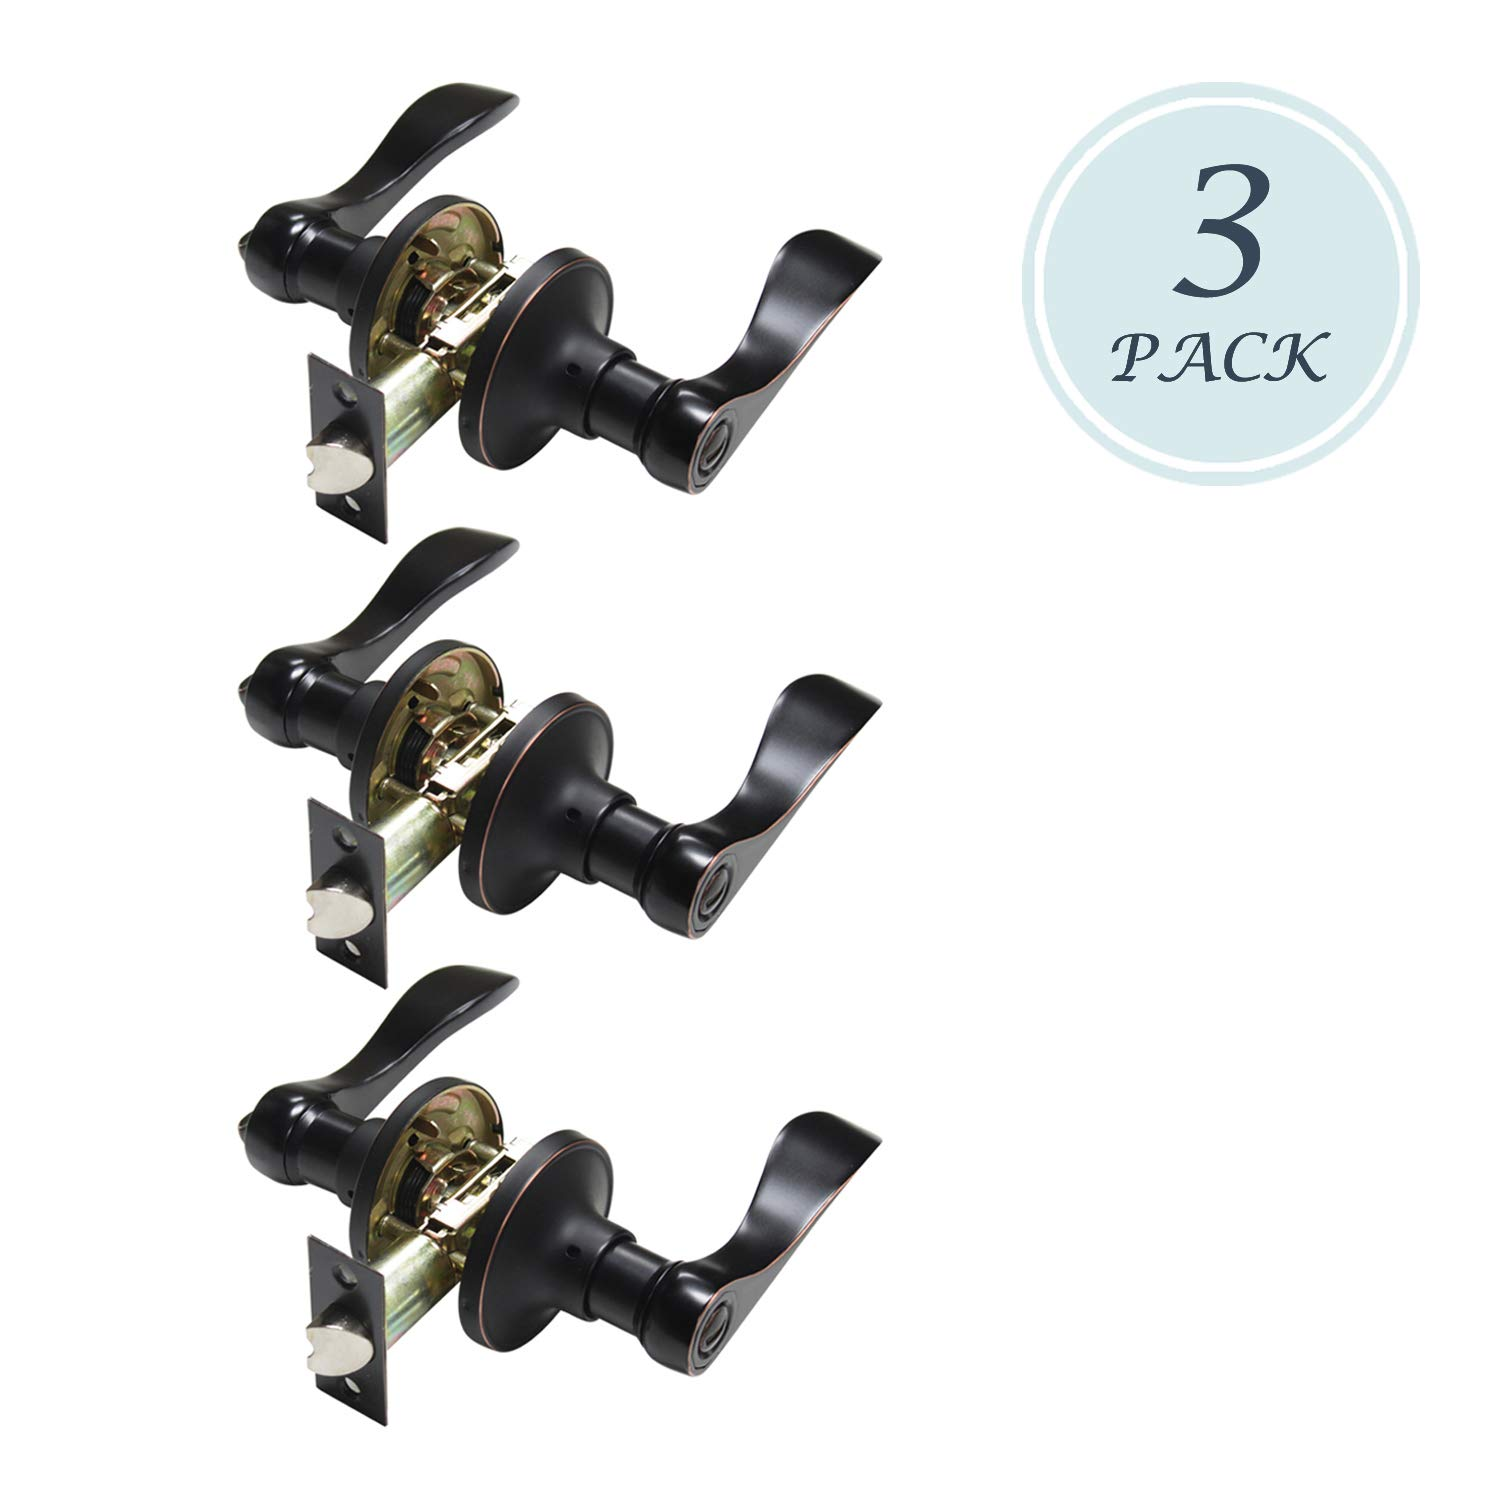 Privacy Door Levers Lock/Lever with In-Use or Vacant Indicator Commercial Grade, Keyless Drop Lever Perfect for Additional Privacy and Security, Used for Bathroom/Bedroom 3 Pack